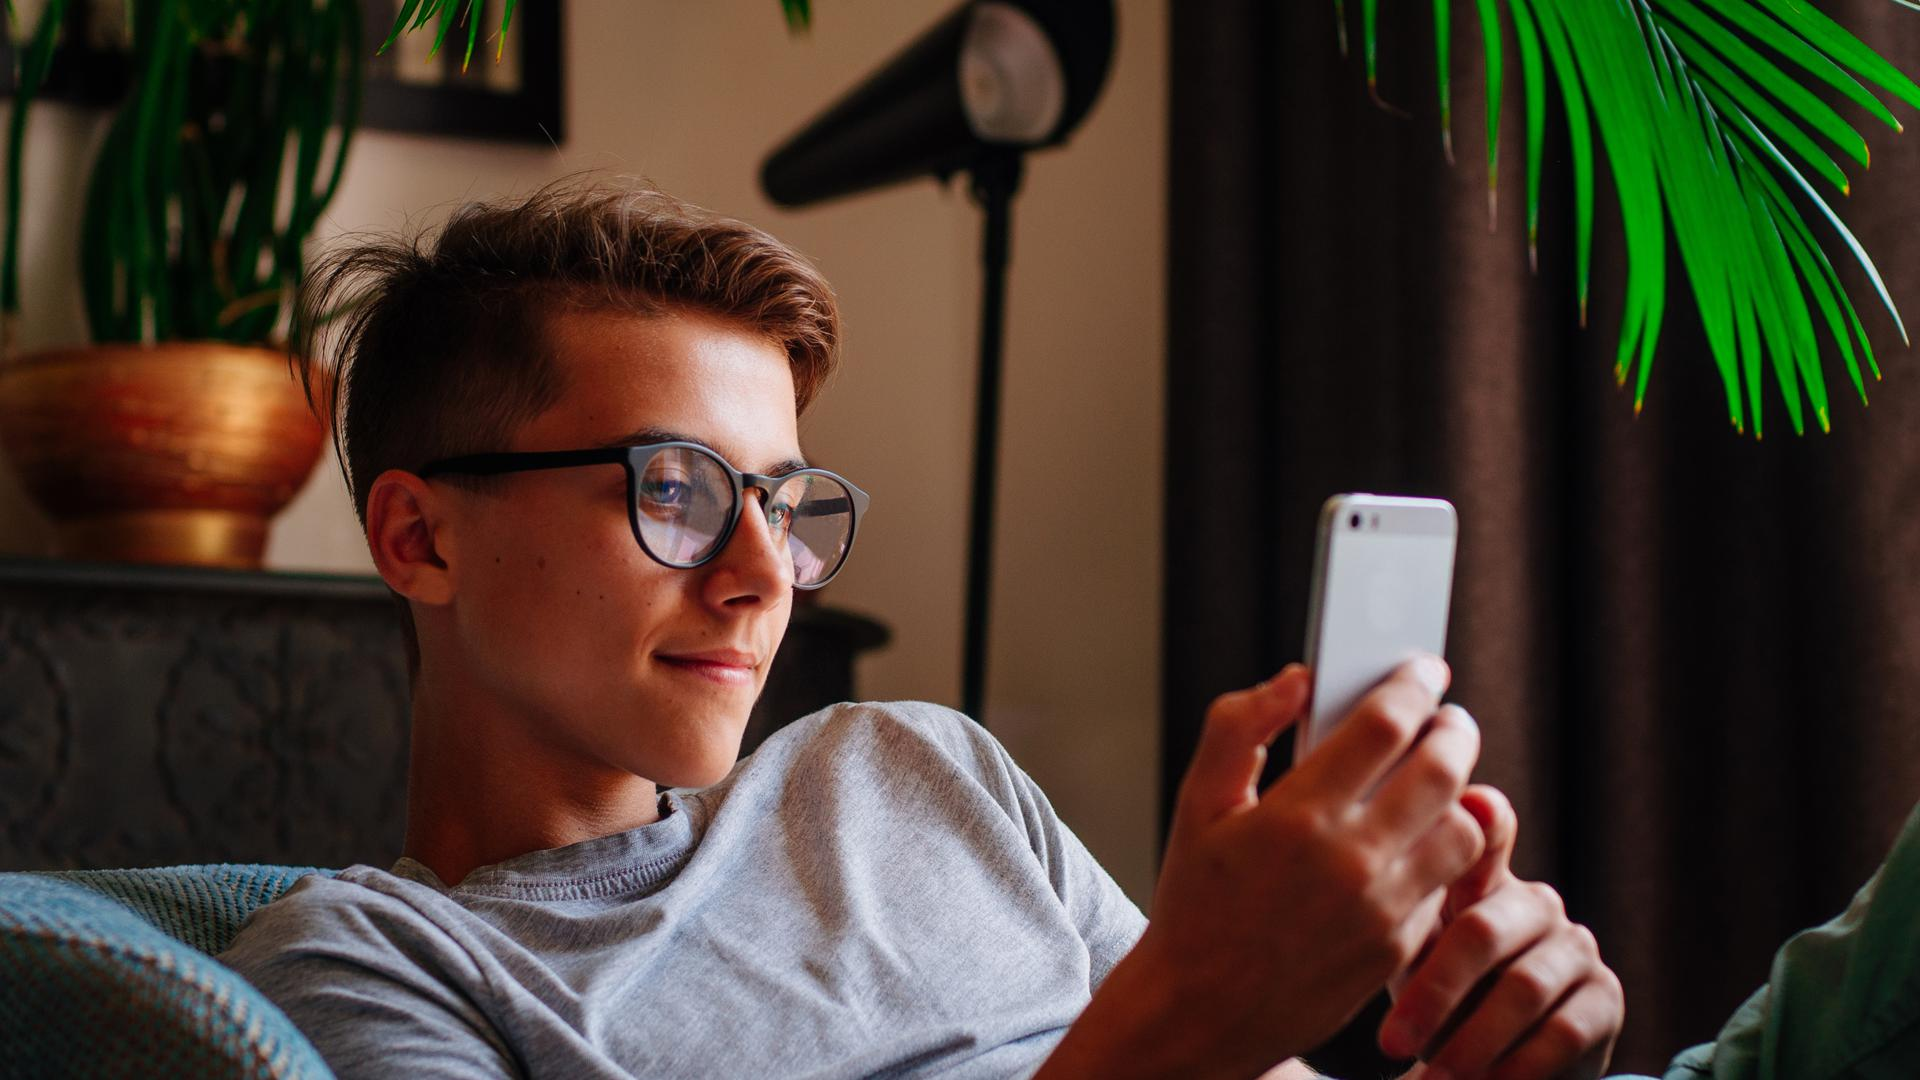 Generation Z concept. Smiling boy in glasses using smartphone sitting in the chair indoor.